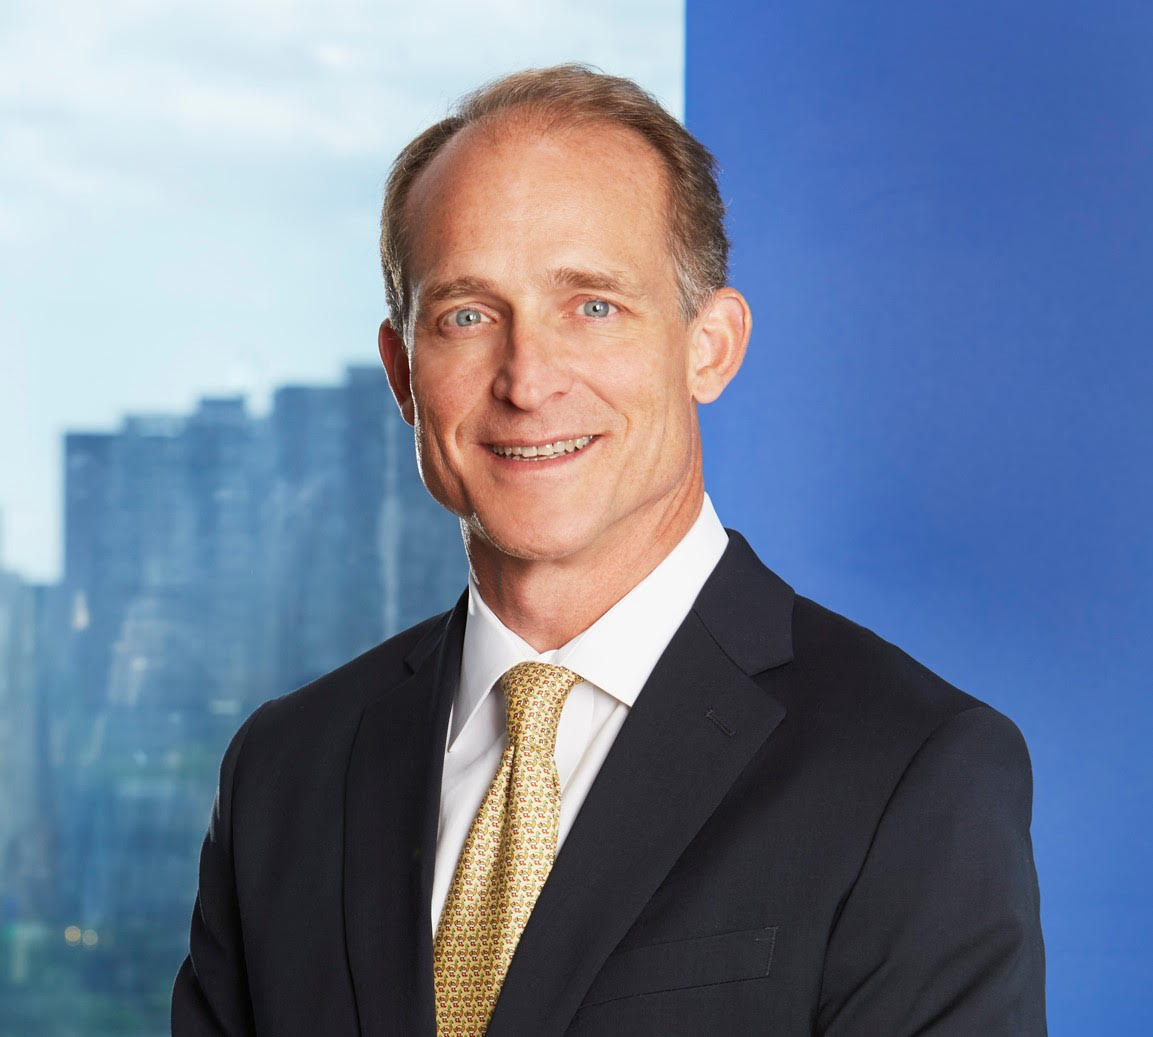 Steve Preston (Weinberg '82) was named as Goodwill International Industries, Inc.'s next president and CEO last week. Preston comes off a long and winding career as head of the Small Business Administration and Secretary of Housing and Urban Development.